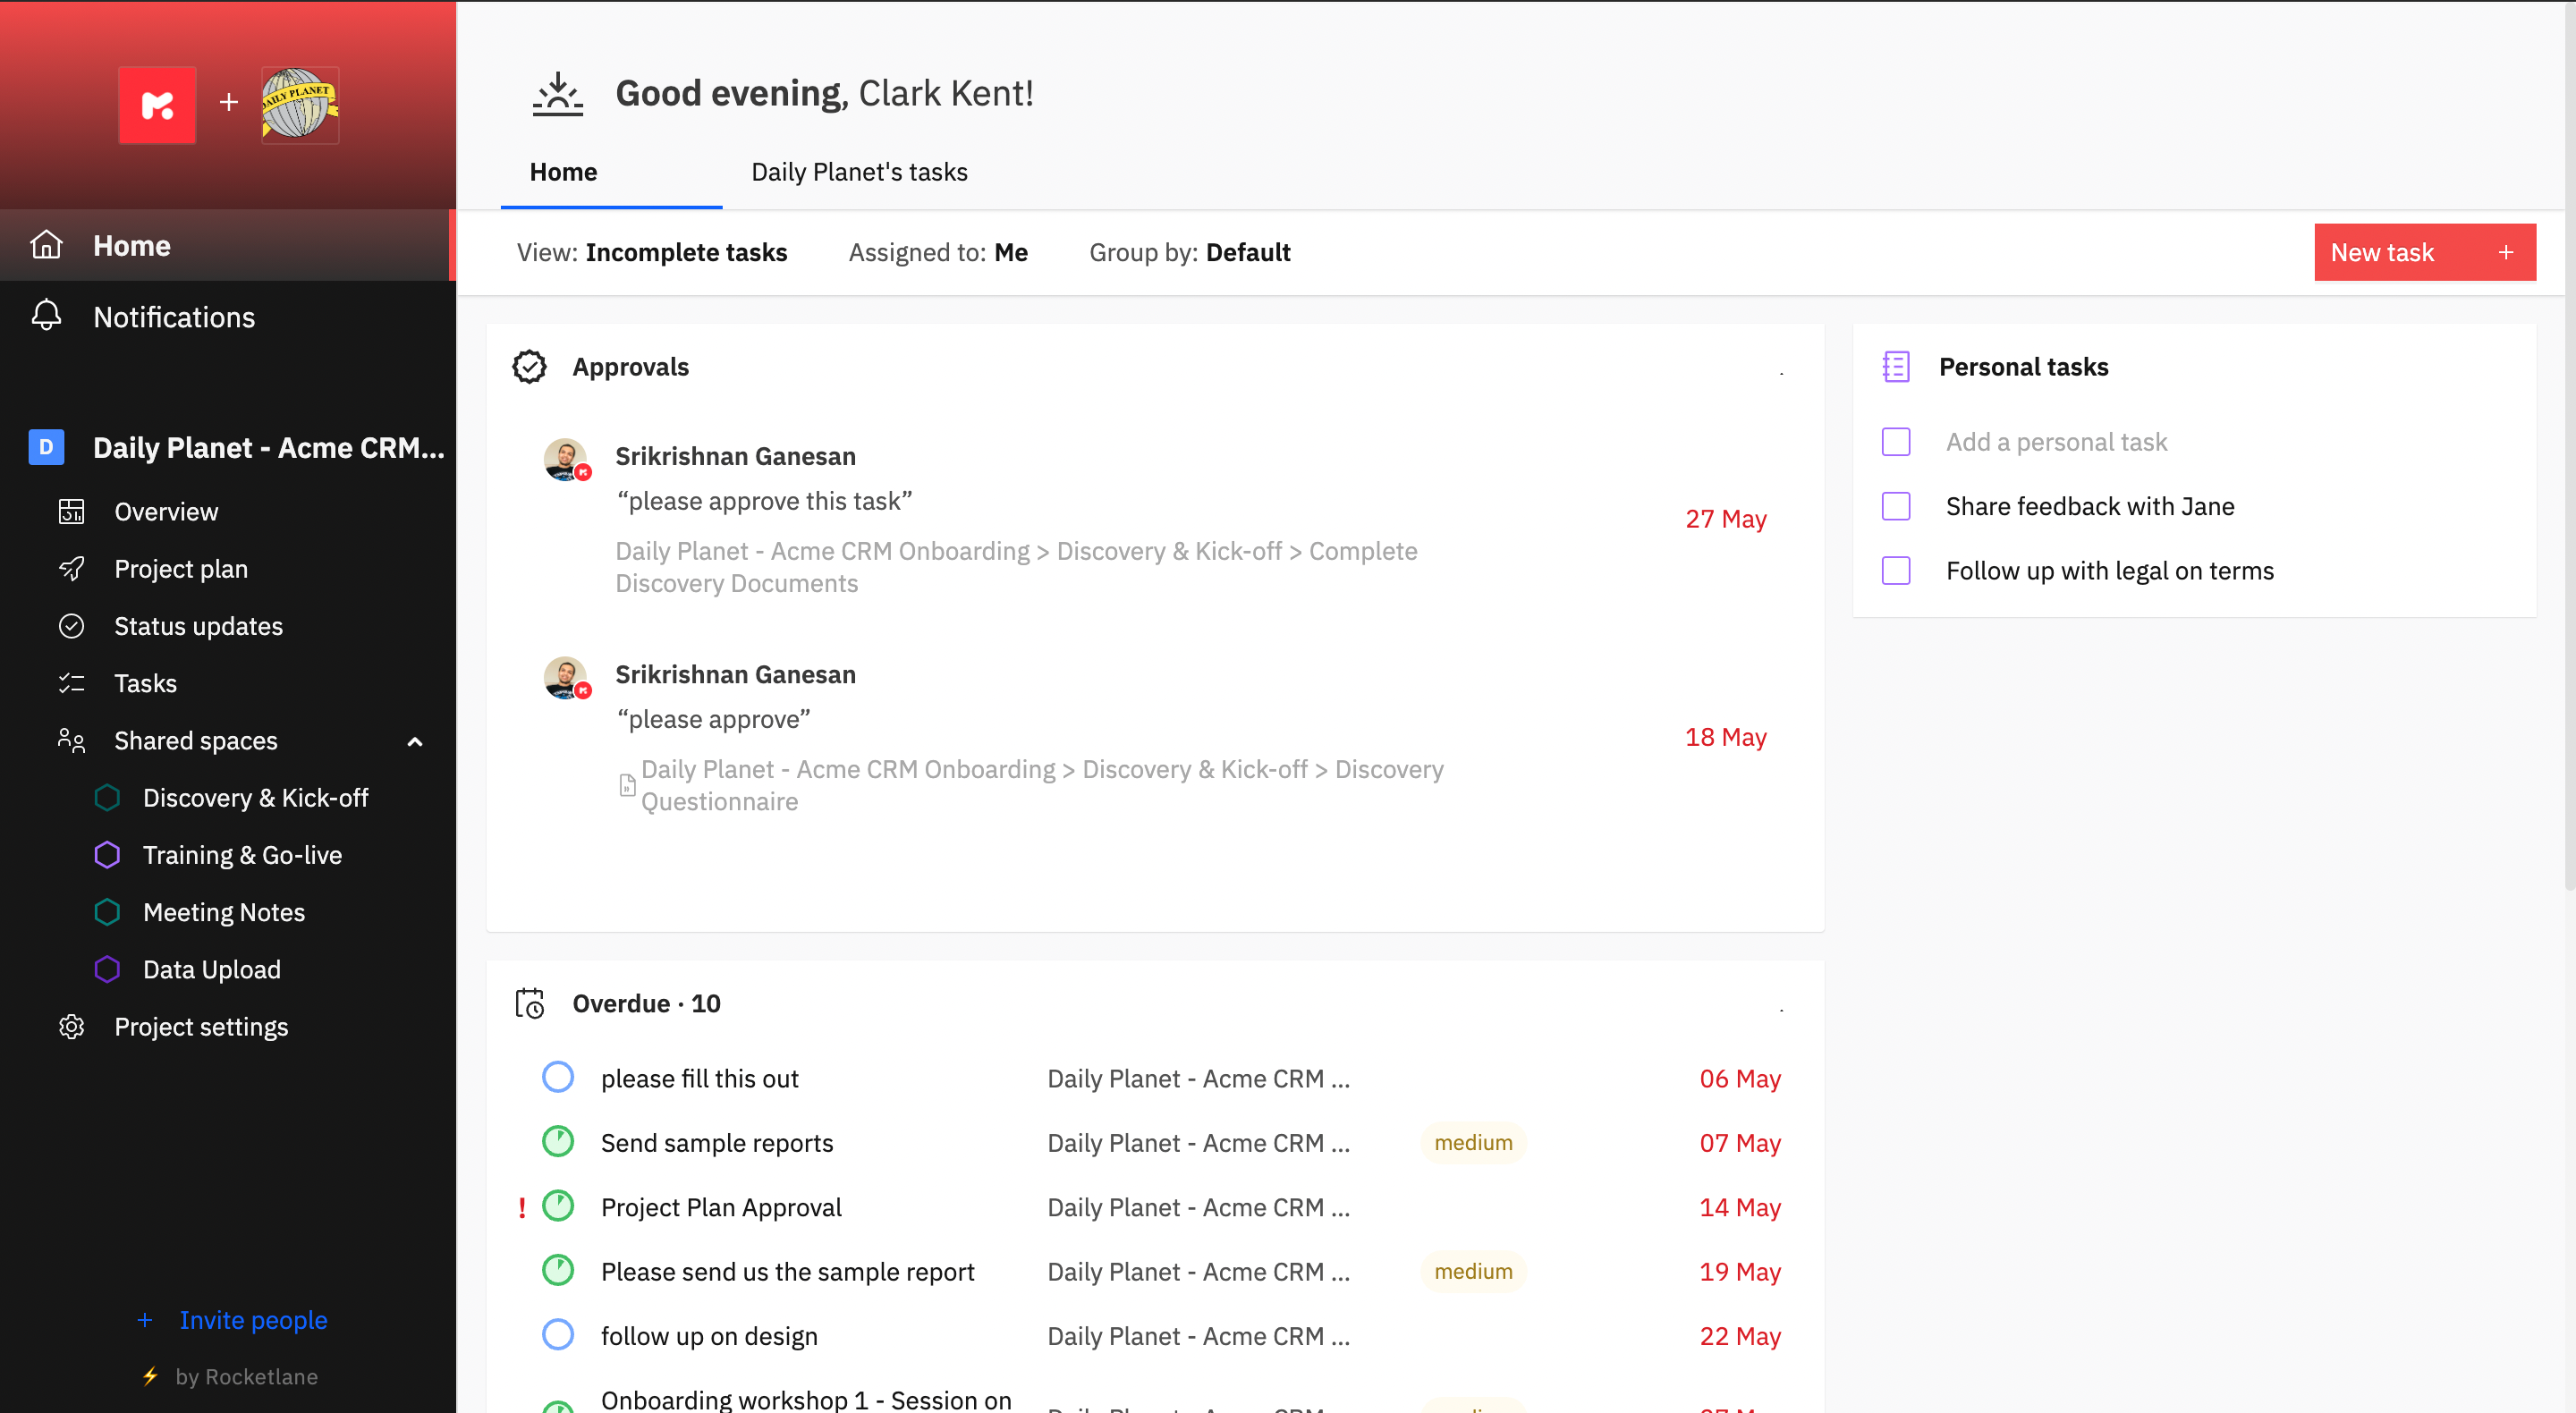 Rocketlane Software - All-in-one white-labeled client portal that combines project management, personal tasks, document collaboration, and messaging communication into a single modern experience that is easily accessible through magic links.